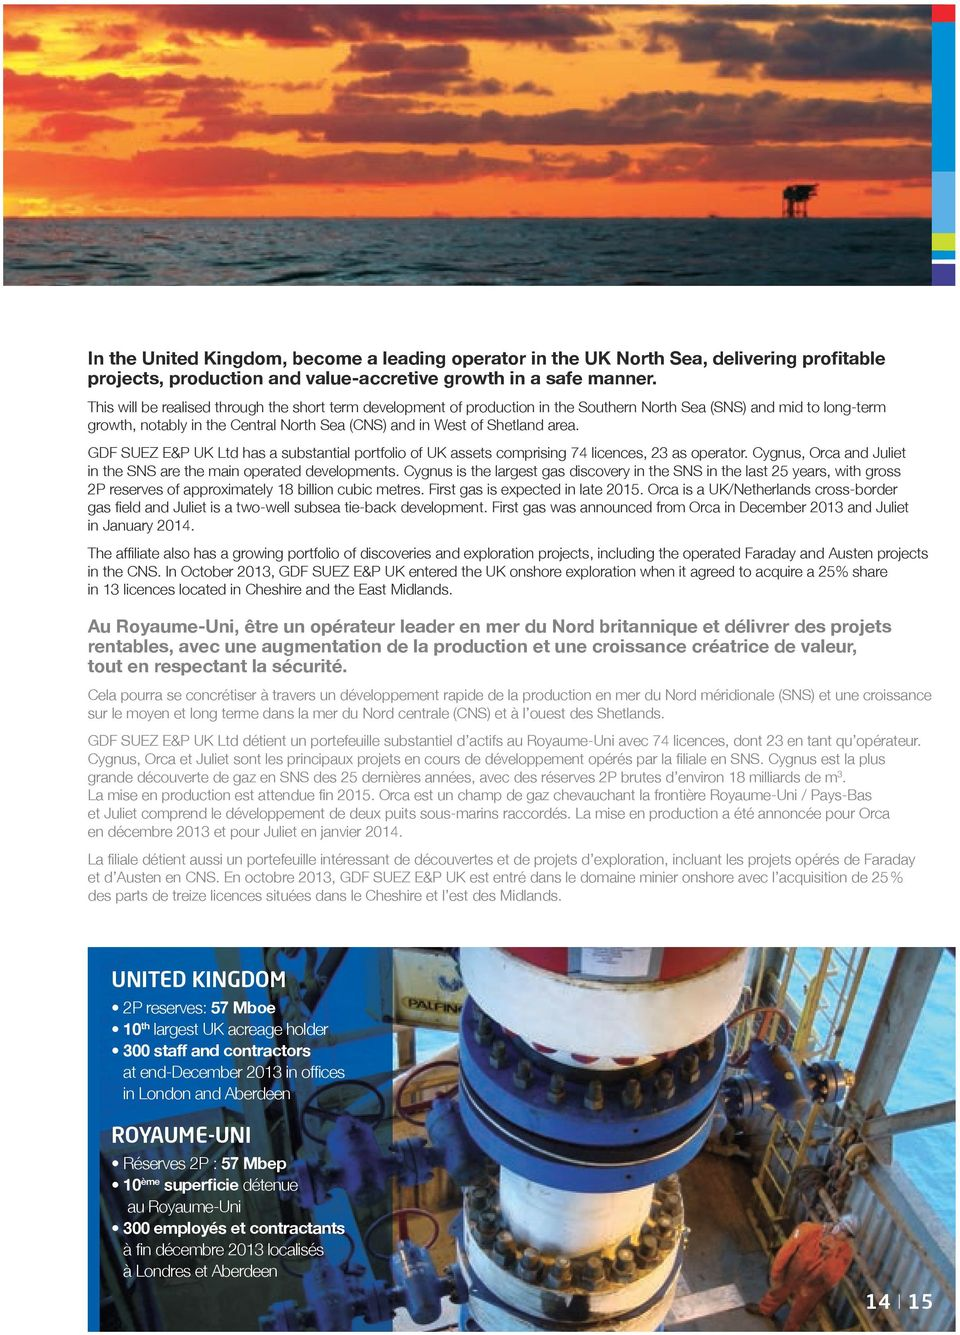 GDF SUEZ E&P UK Ltd has a substantial portfolio of UK assets comprising 74 licences, 23 as operator. Cygnus, Orca and Juliet in the SNS are the main operated developments.